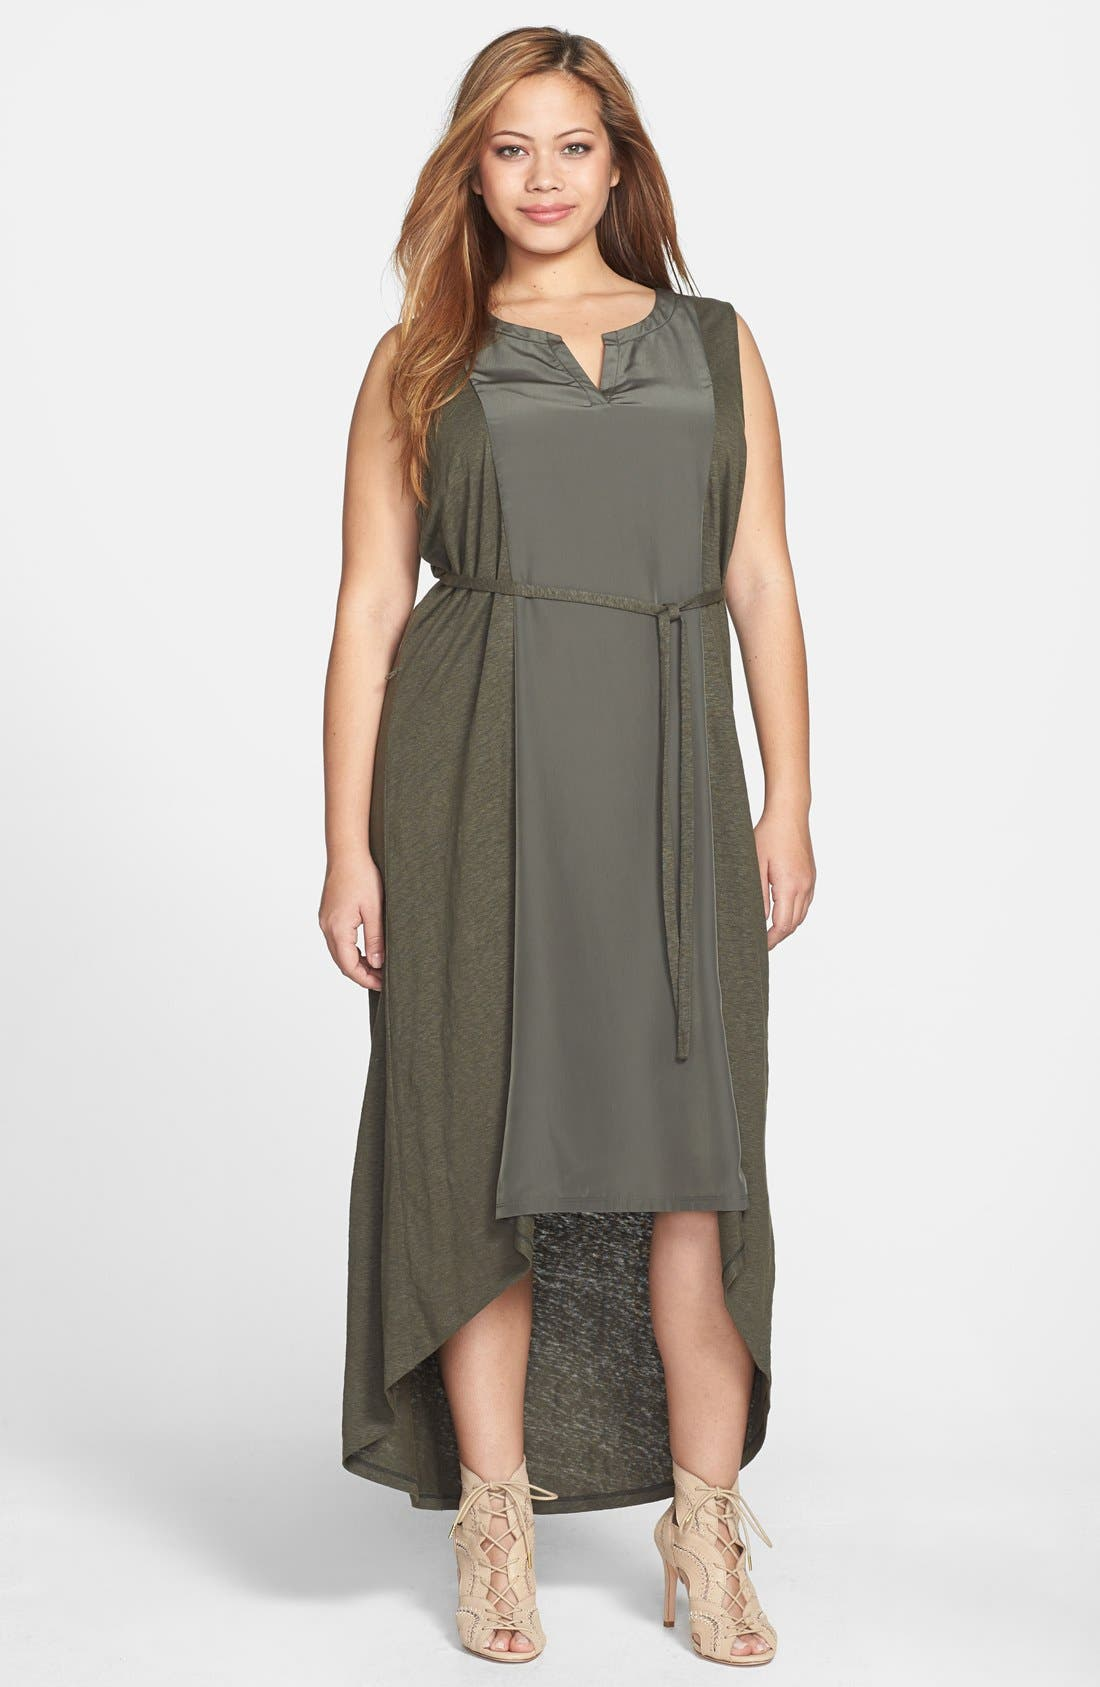 Alternate Image 1 Selected - Halogen® Mixed Media High/Low Maxi Dress (Plus Size)